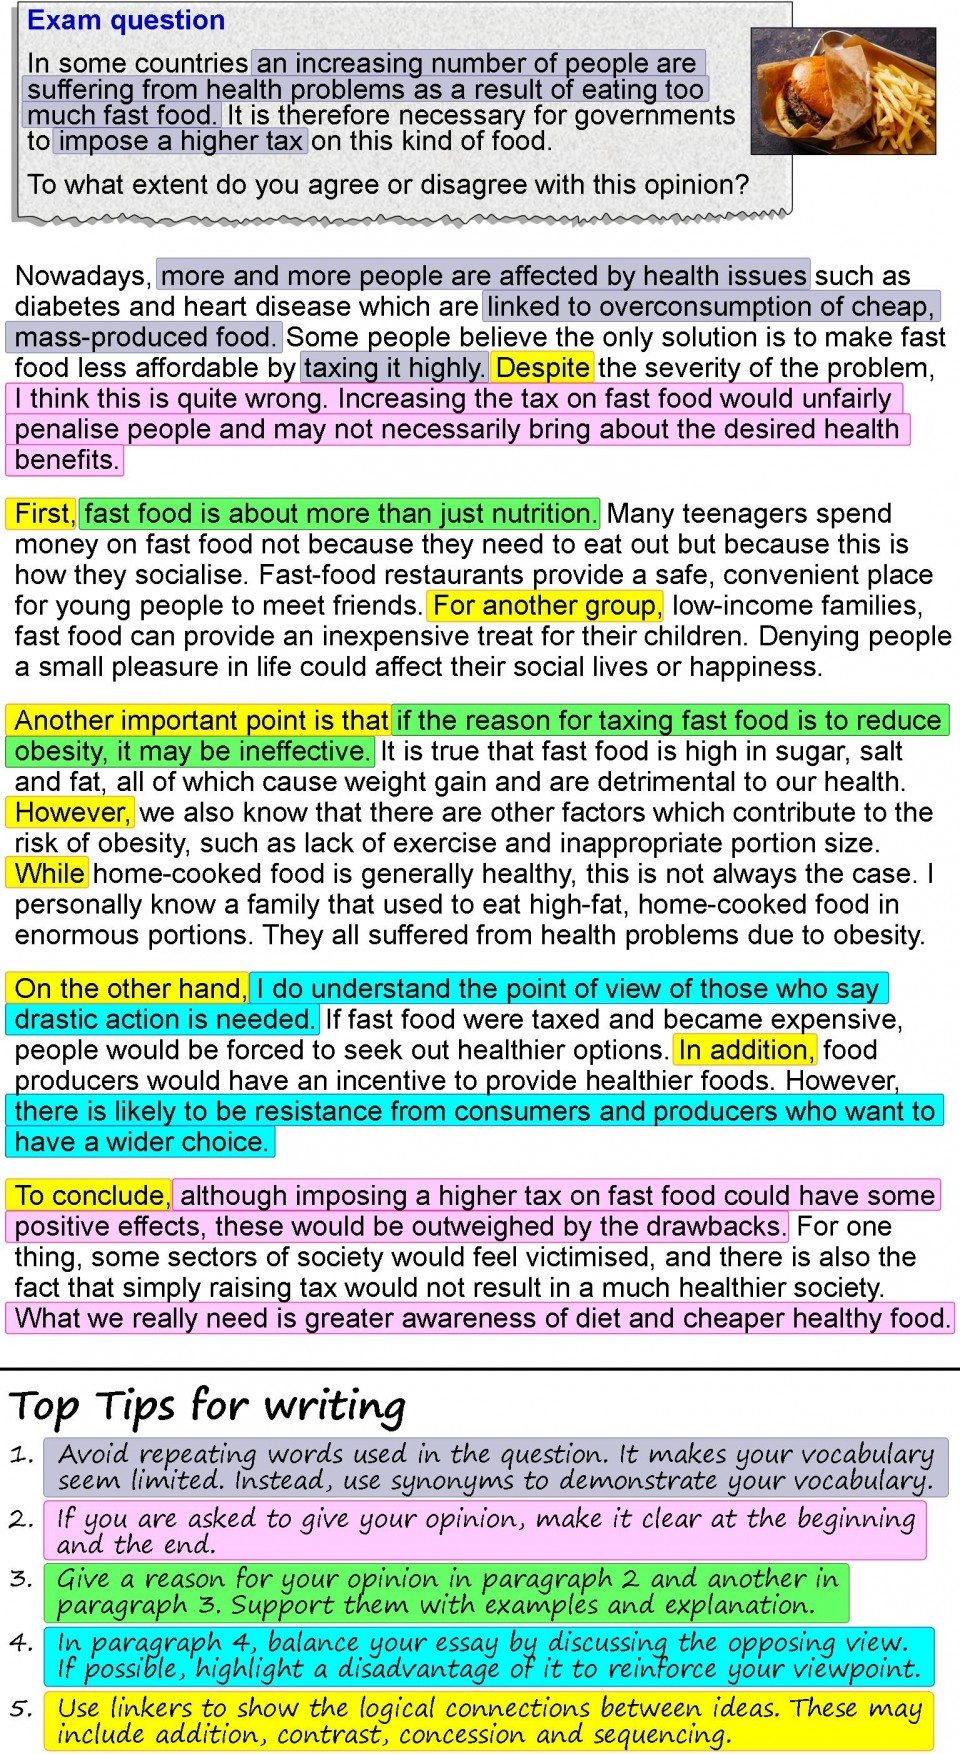 001 Opinion Essay About Fast Food Example An 4 Unbelievable Is A Good Alternative To Cooking For Yourself British Council 960